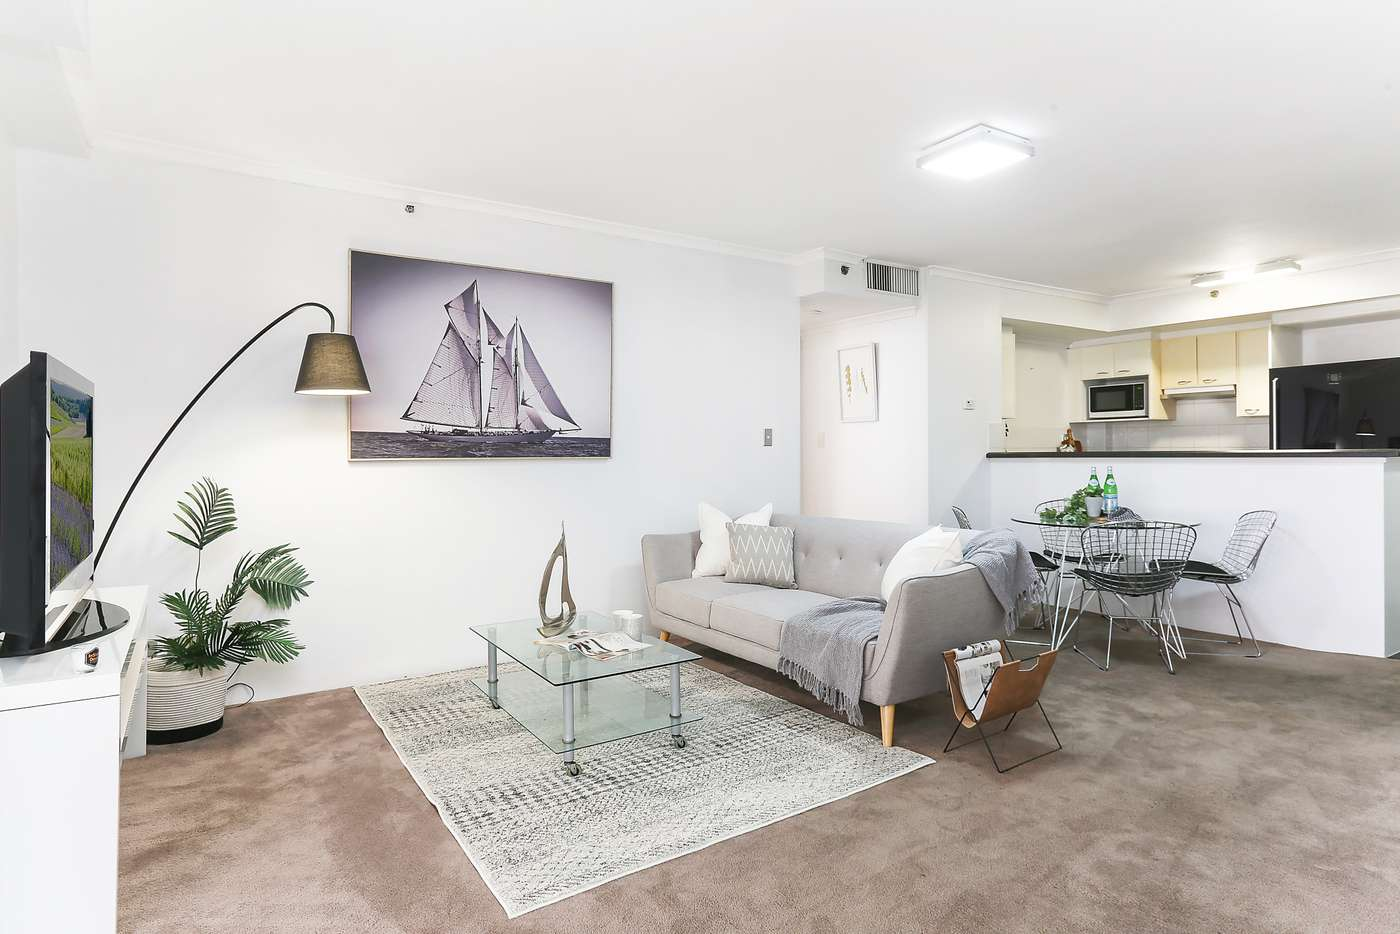 Main view of Homely apartment listing, 253/303 Castlereagh St, Sydney NSW 2000